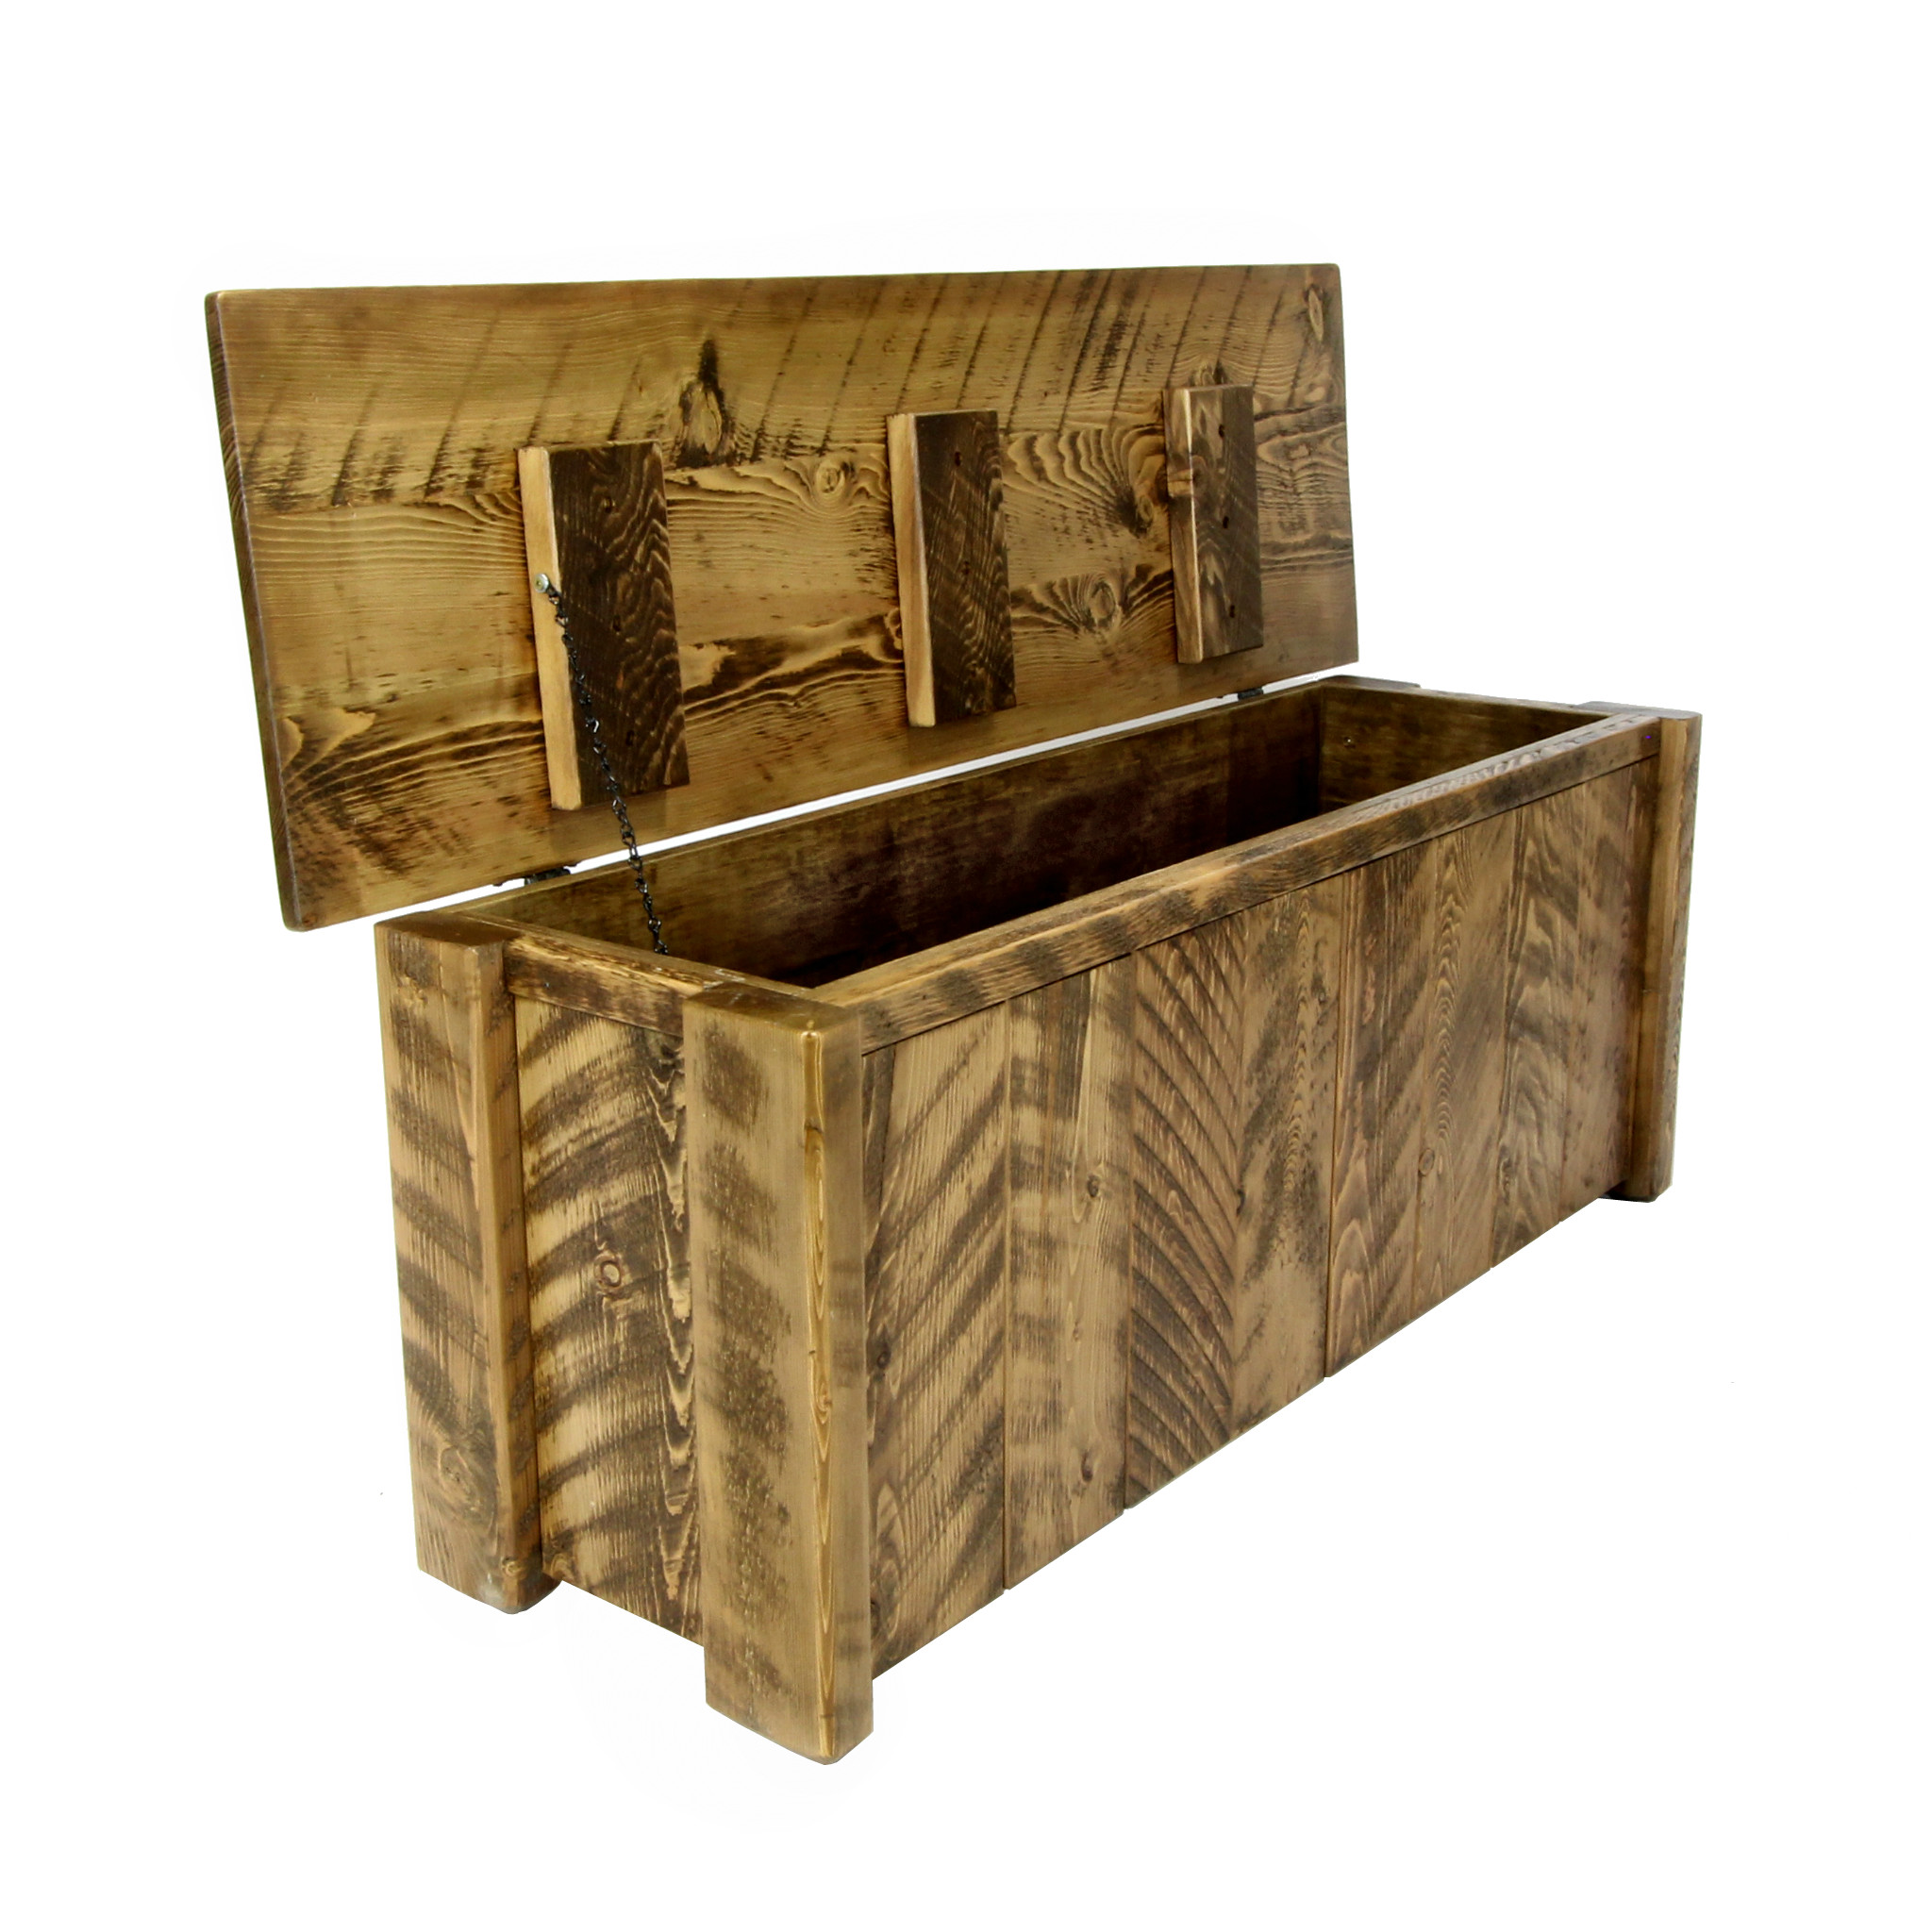 Charmant Rustic Blanket Storage Trunk 3